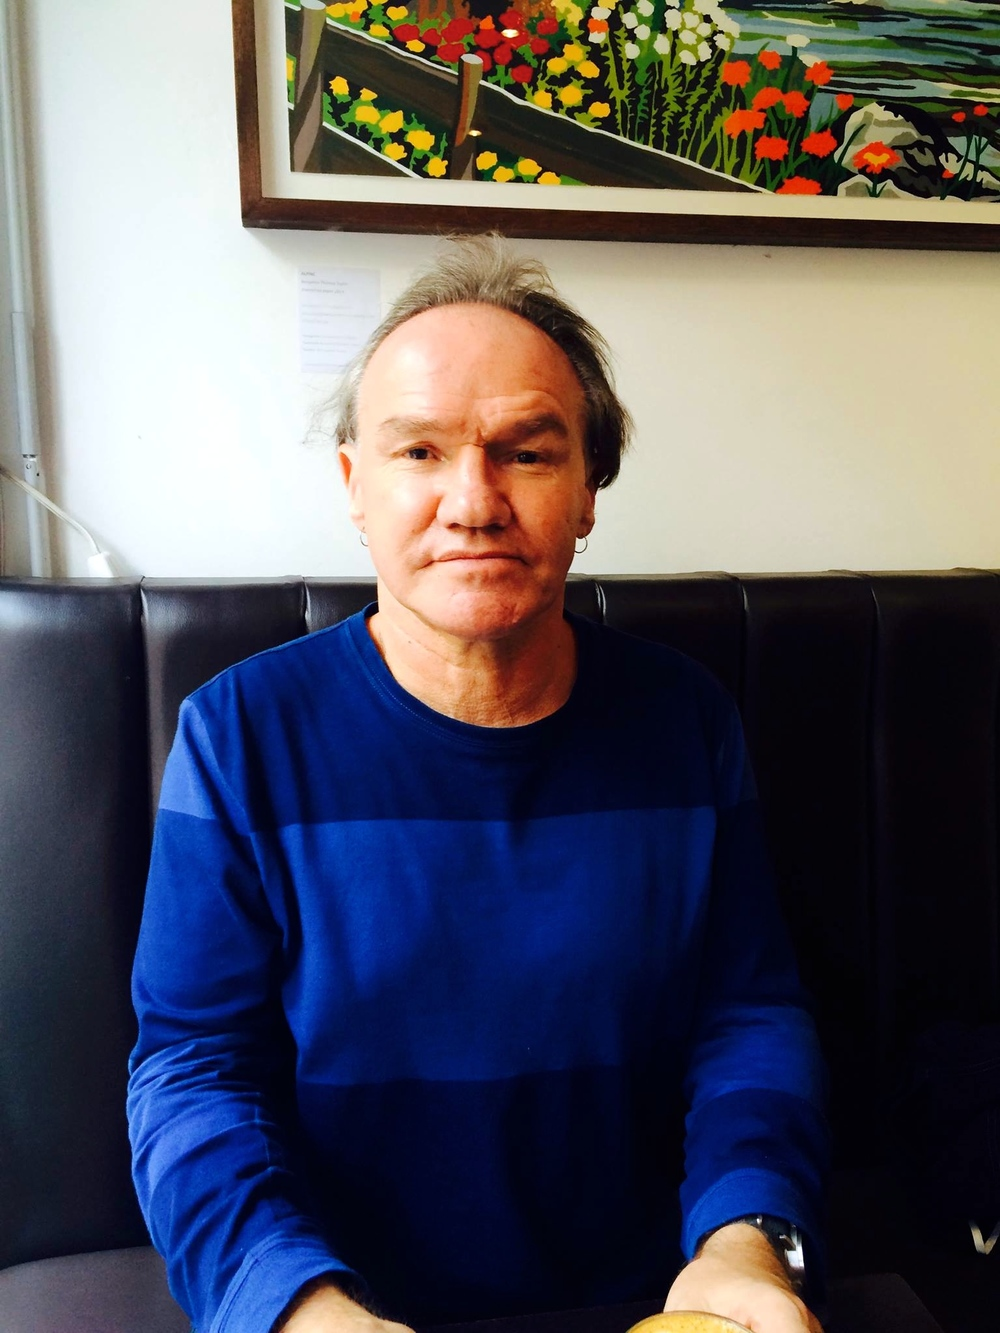 Tony Birch is the author of the books Shadowboxing (2006), Father's Day (2009), Blood (2011), shortlisted for the Miles Franklin literary award, and The Promise (2014).  His new novel, Ghost River, was released in October 2015.  Both his fiction and nonfiction has been published widely in literary magazines and anthologies, both in Australia and internationally.  He is currently the the inaugural Bruce McGuinness Research Fellow within the Moondani Balluk Centre at Victoria University.